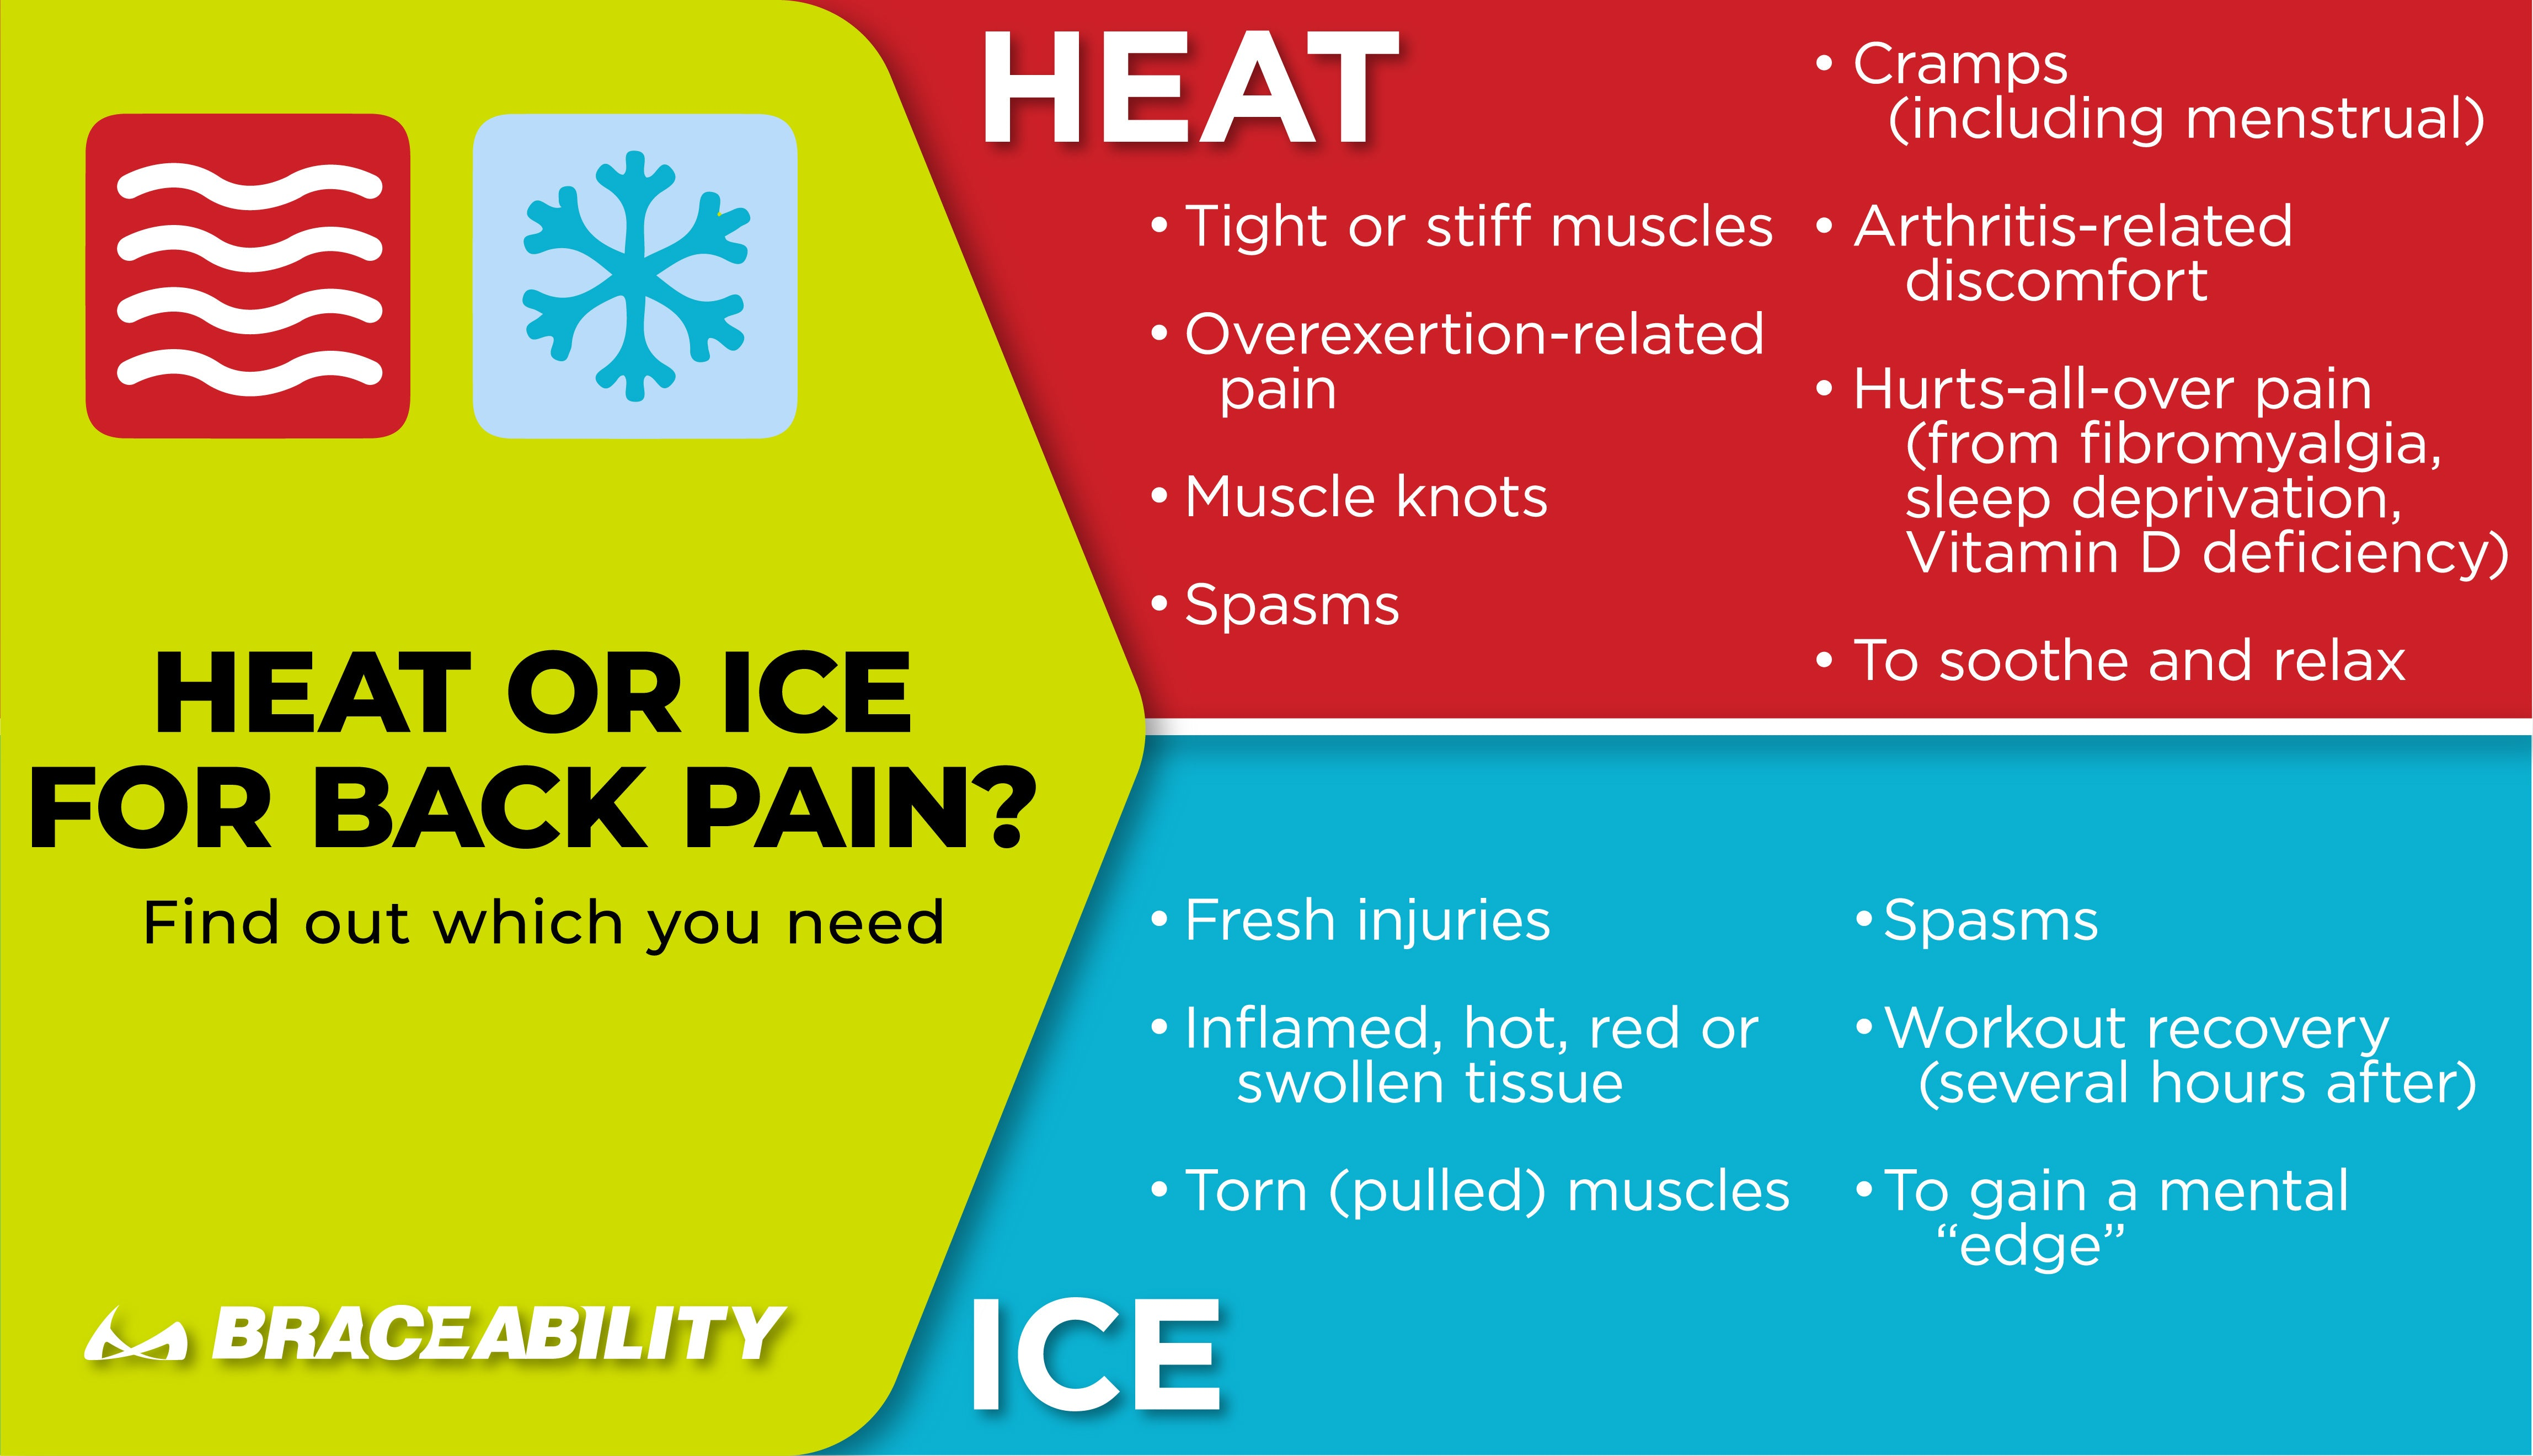 use this infographic to determine if you need to apply heat or ice for back pain